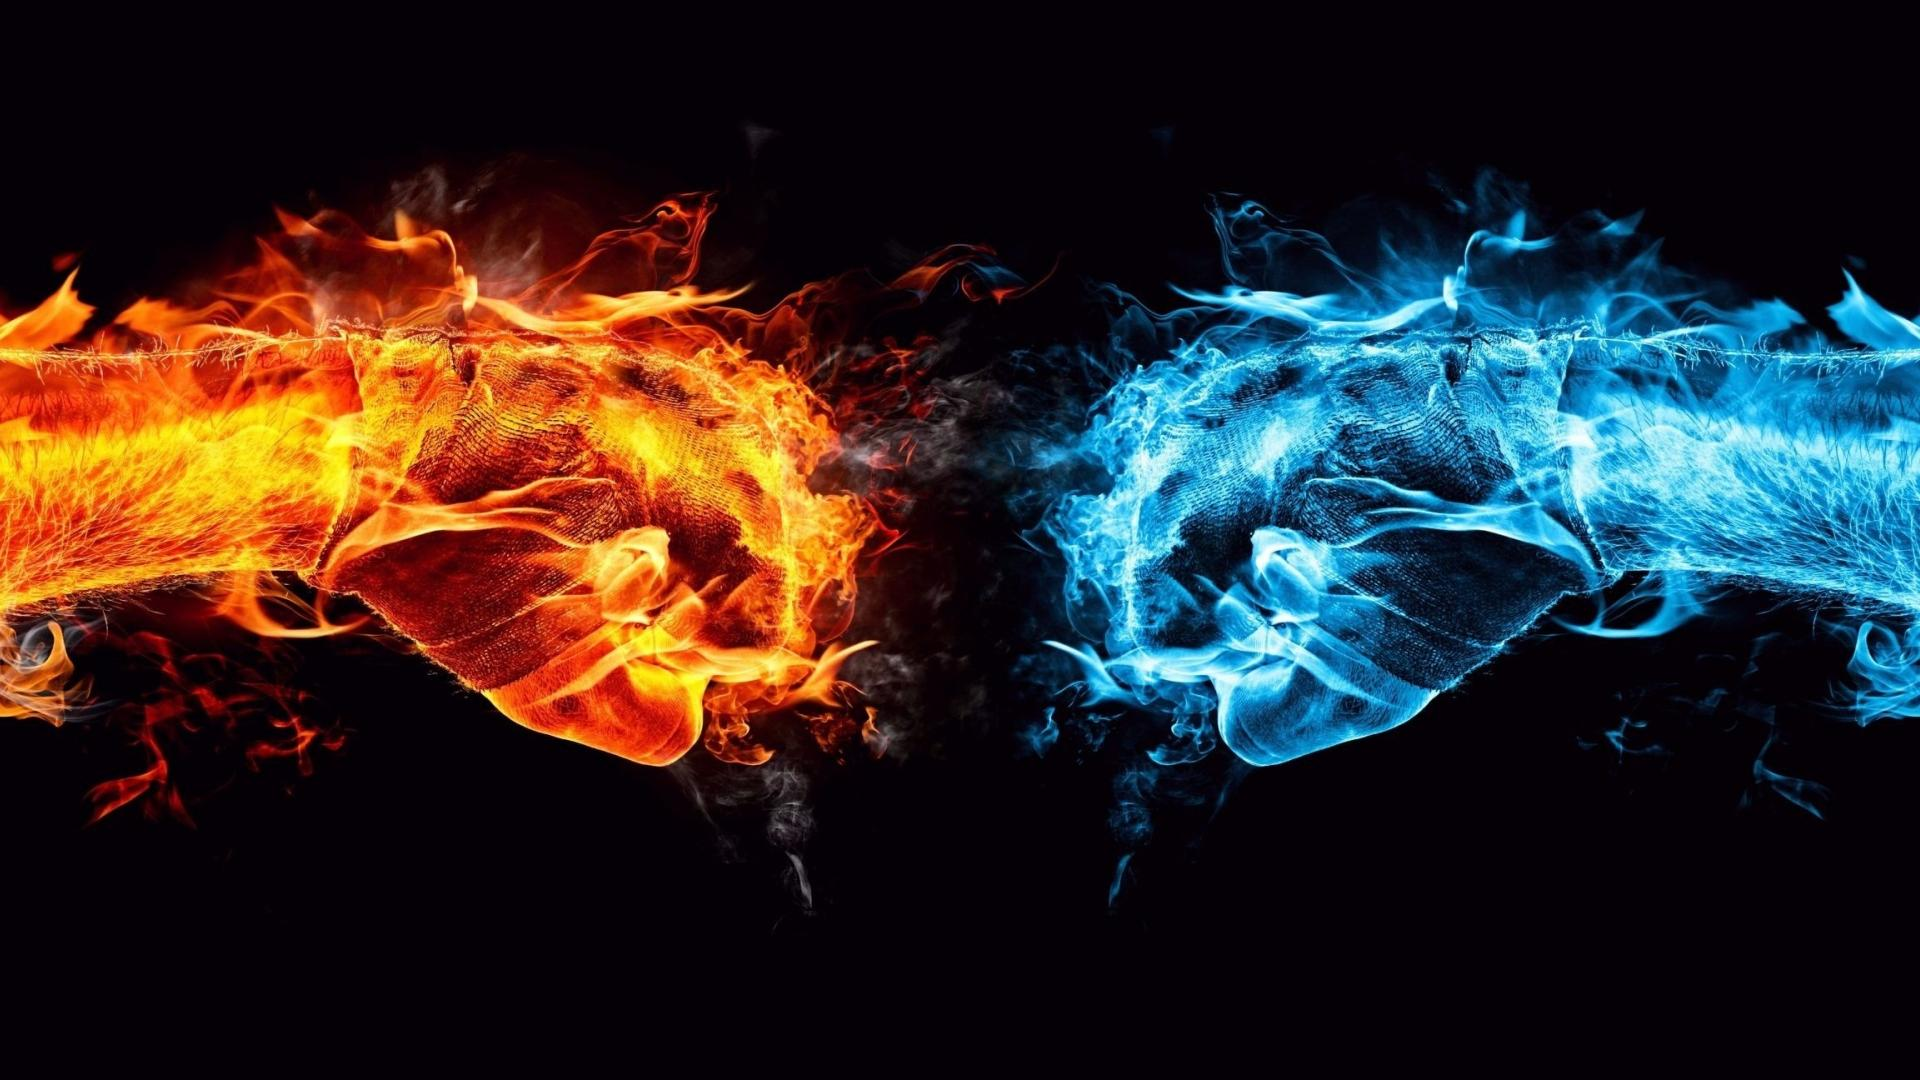 background fire and ice the wolf pack wallpaper 21119971 fanpop 1920x1080